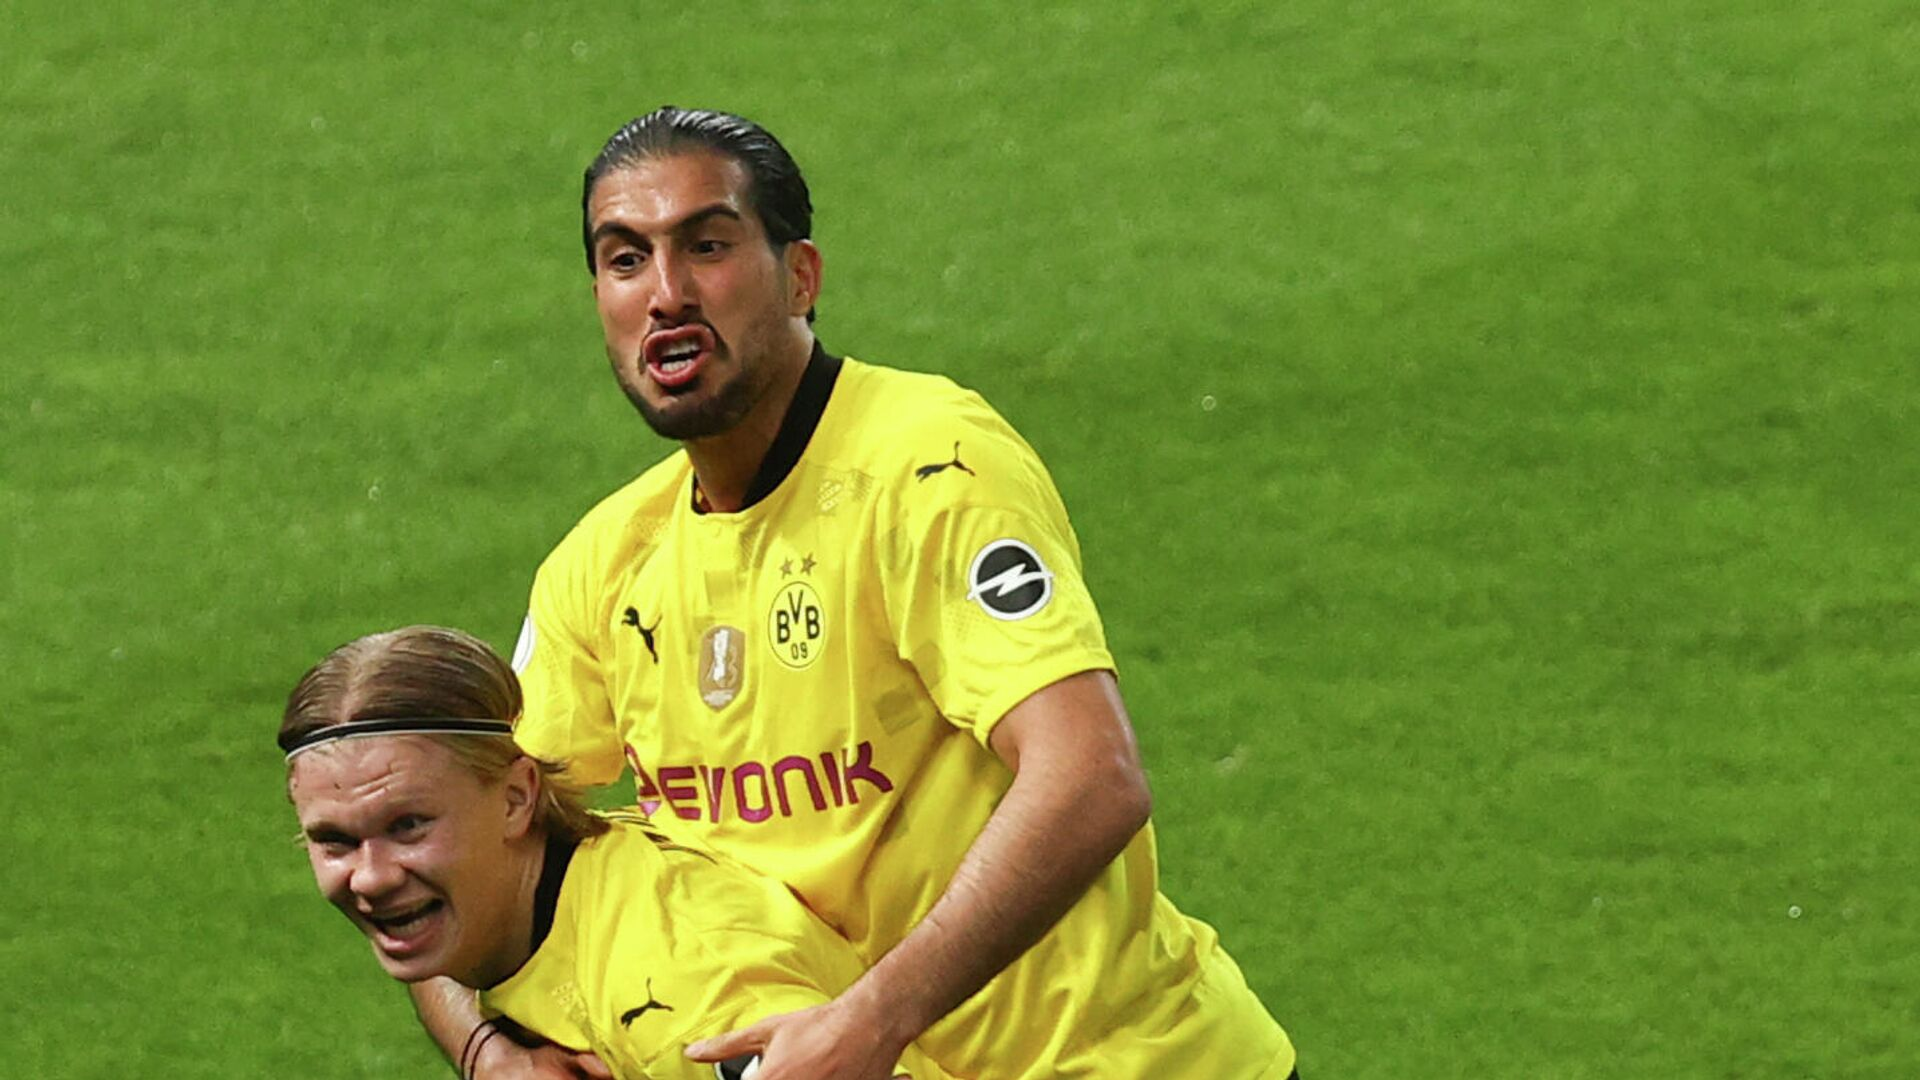 Dortmund's Norwegian forward Erling Braut Haaland celebrates scoring with Dortmund's German midfielder Emre Can during the German Cup (DFB Pokal) final football match RB Leipzig v BVB Borussia Dortmund, in Berlin on May 13, 2021. (Photo by MAJA HITIJ / POOL / AFP) / RESTRICTIONS: ACCORDING TO DFB RULES IMAGE SEQUENCES TO SIMULATE VIDEO IS NOT ALLOWED DURING MATCH TIME. MOBILE (MMS) USE IS NOT ALLOWED DURING AND FOR FURTHER TWO HOURS AFTER THE MATCH. == RESTRICTED TO EDITORIAL USE == FOR MORE INFORMATION CONTACT DFB DIRECTLY AT +49 69 67880 /  - РИА Новости, 1920, 13.05.2021